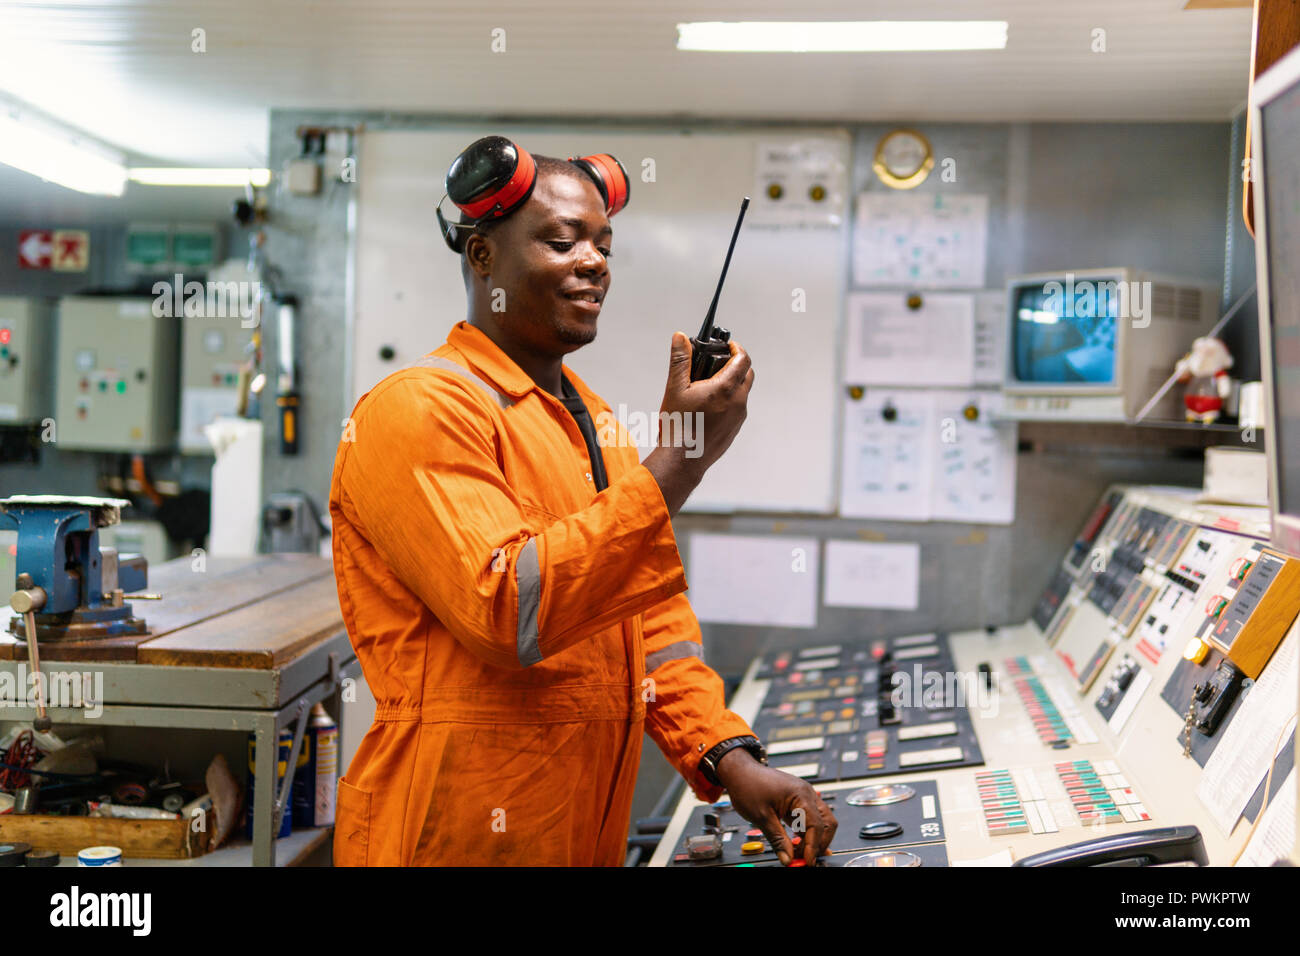 Marine engineer officer working in engine room - Stock Image